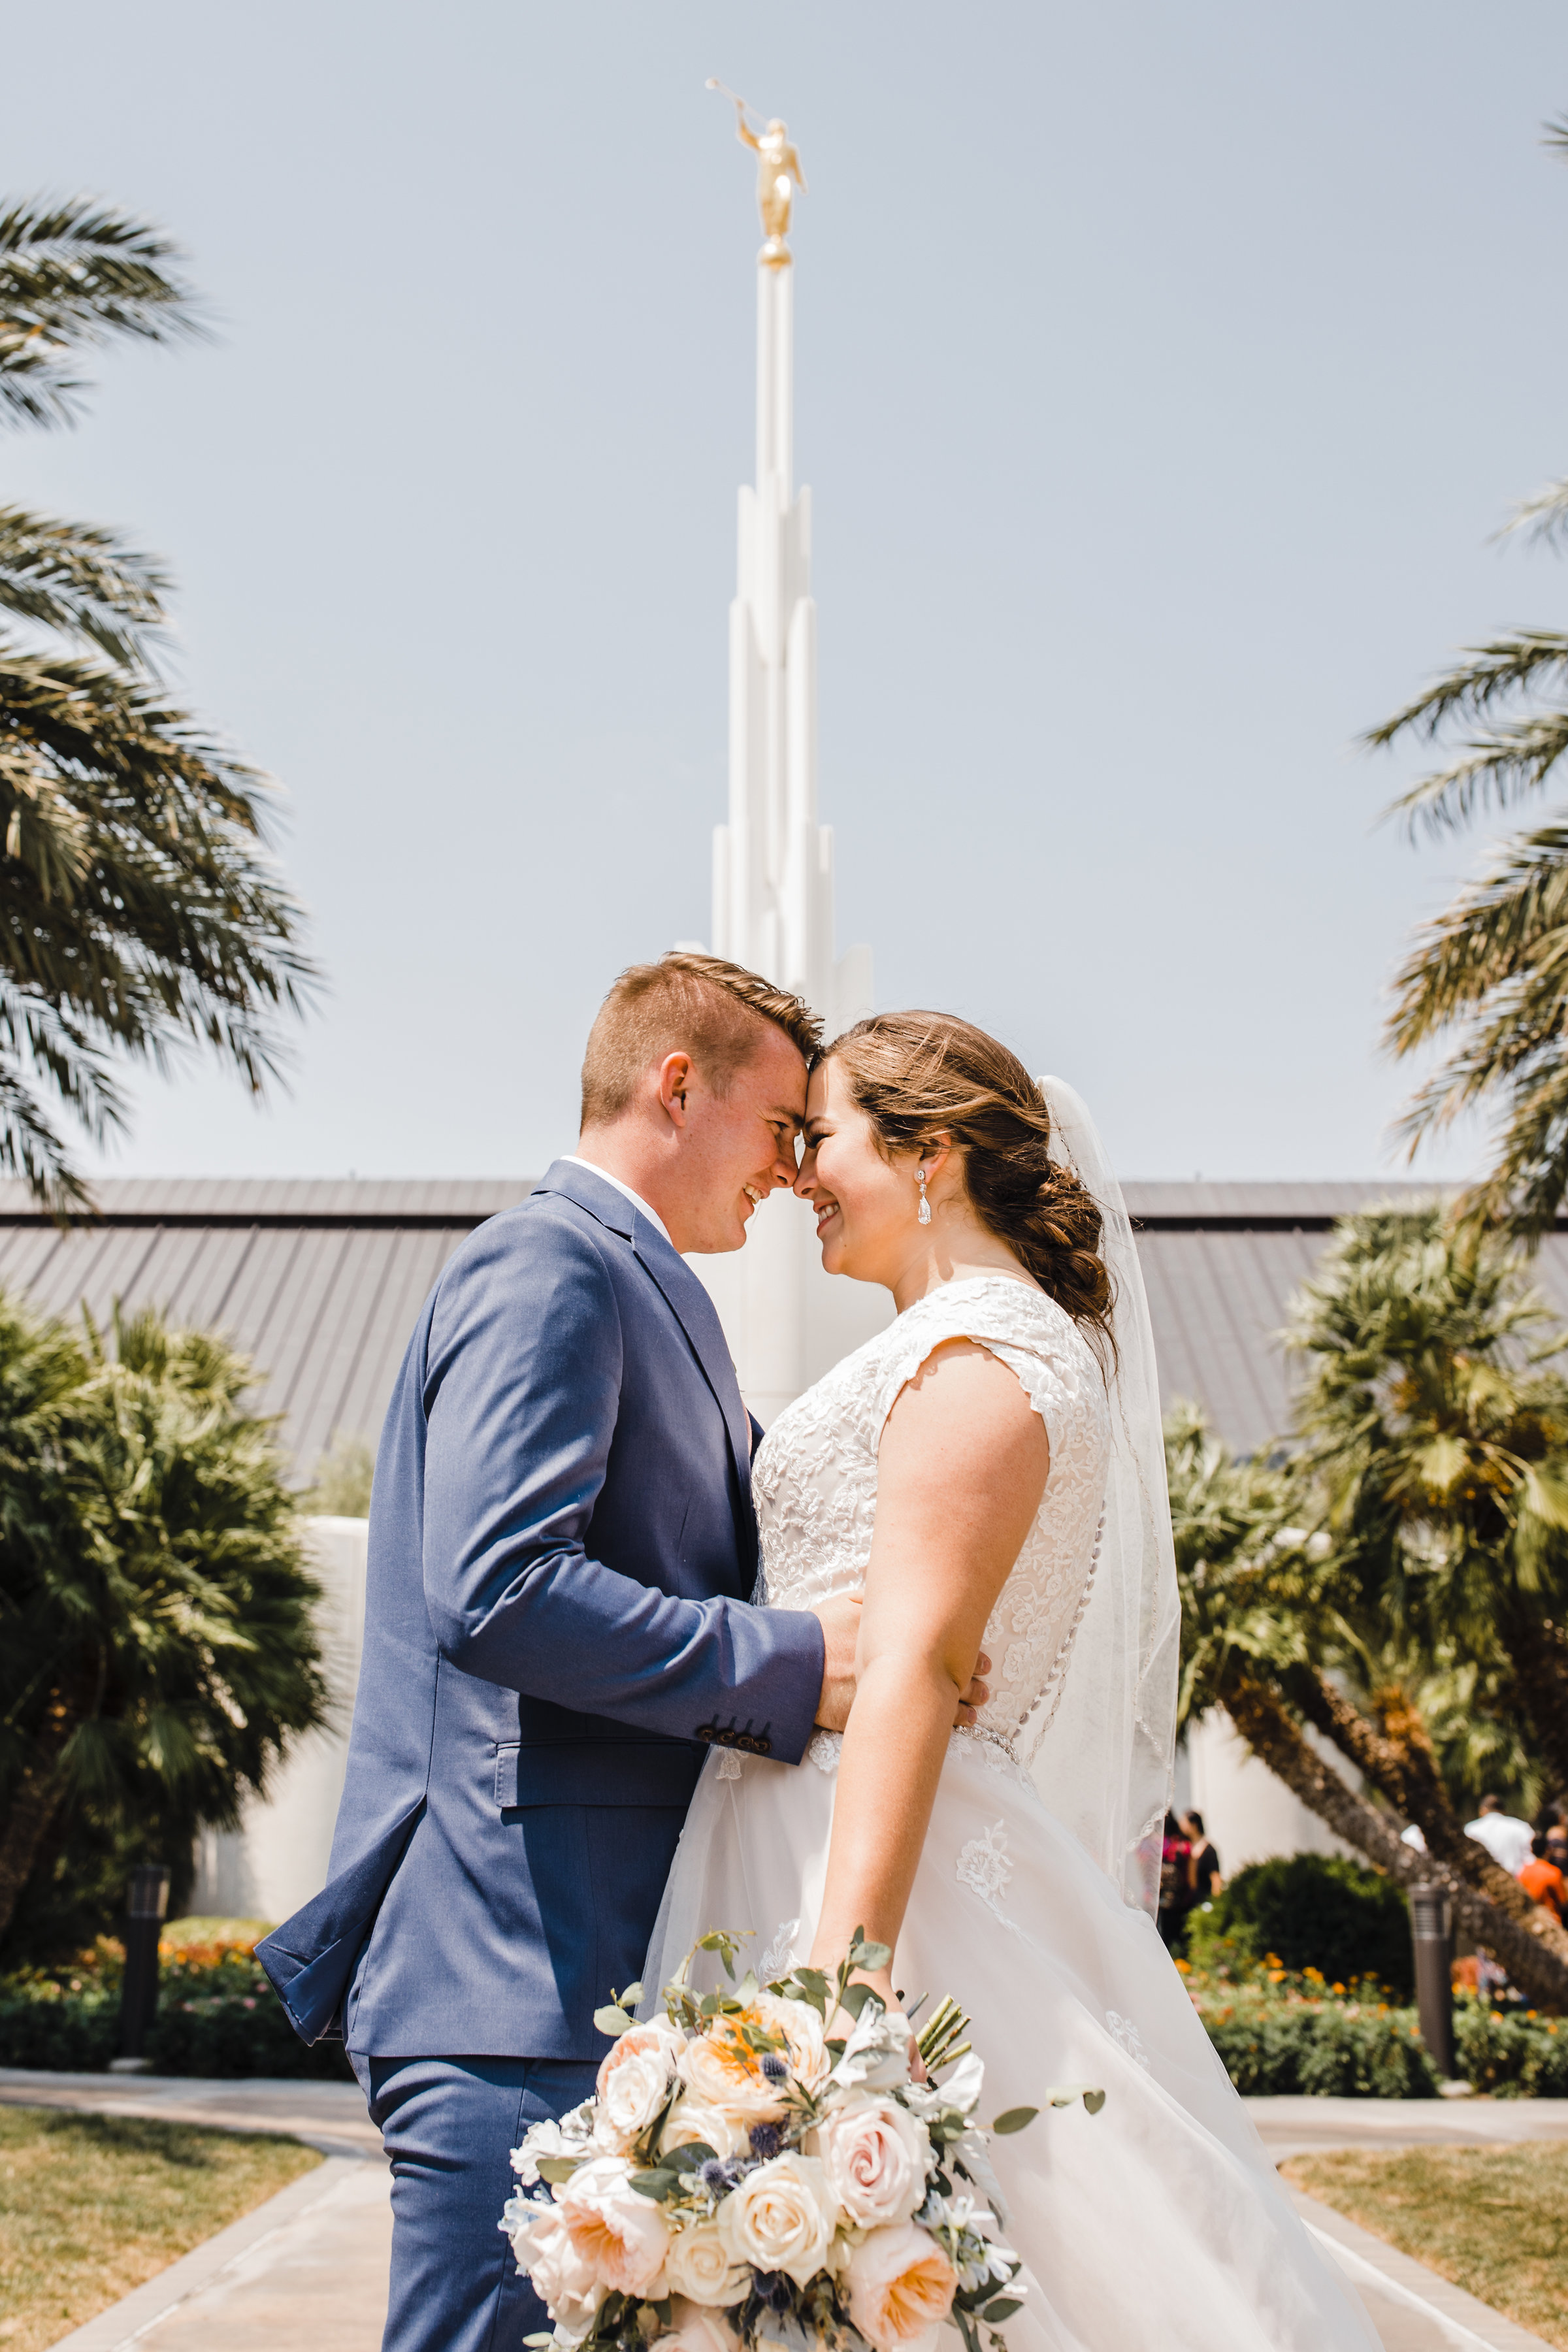 professional las vegas wedding photographer lds temple hugging laughing smiling